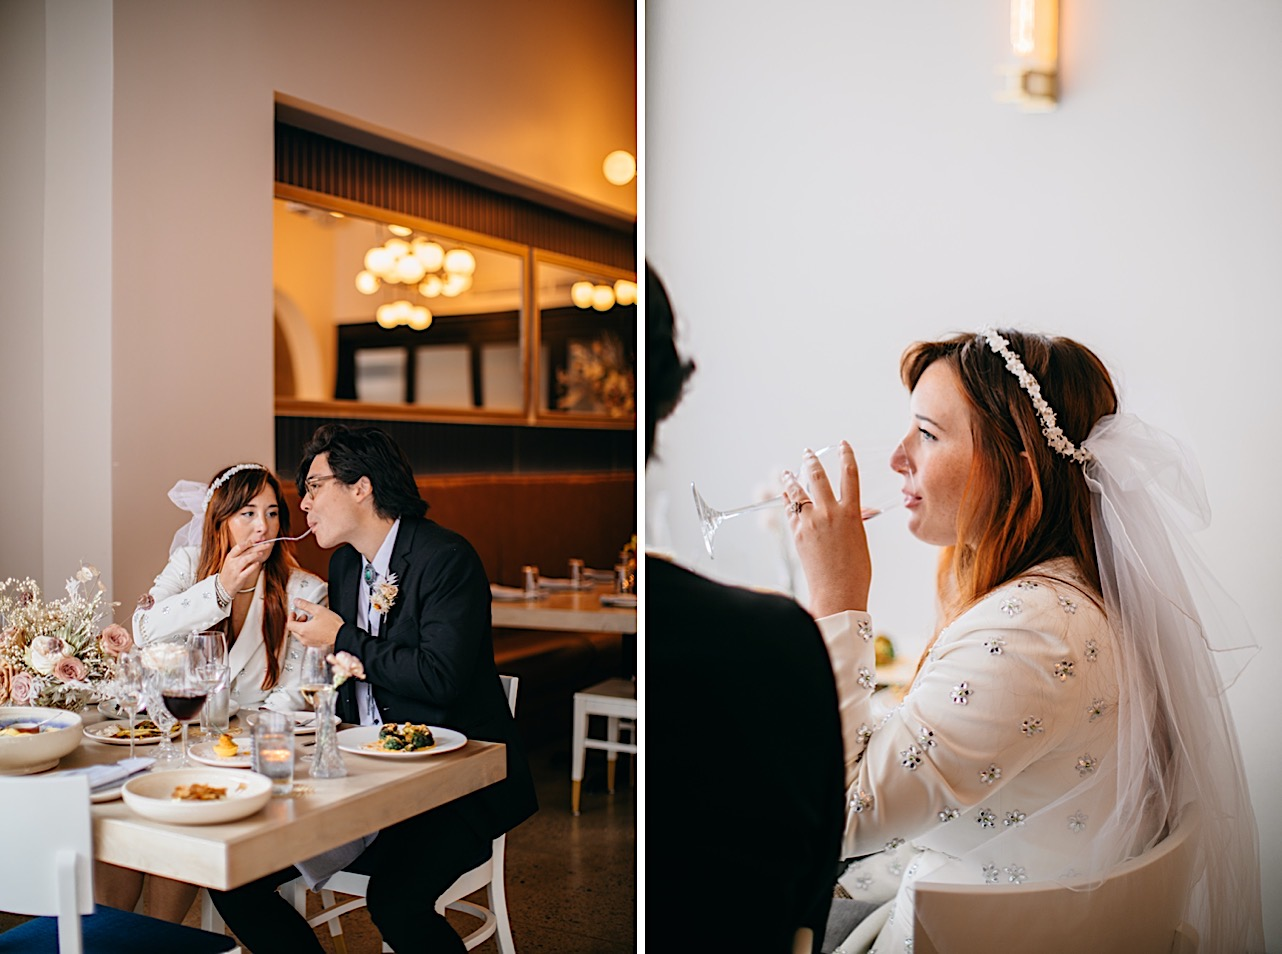 A bride and groom eat and drink wine at a table at Easy Bistro & Bar in Chattanooga.